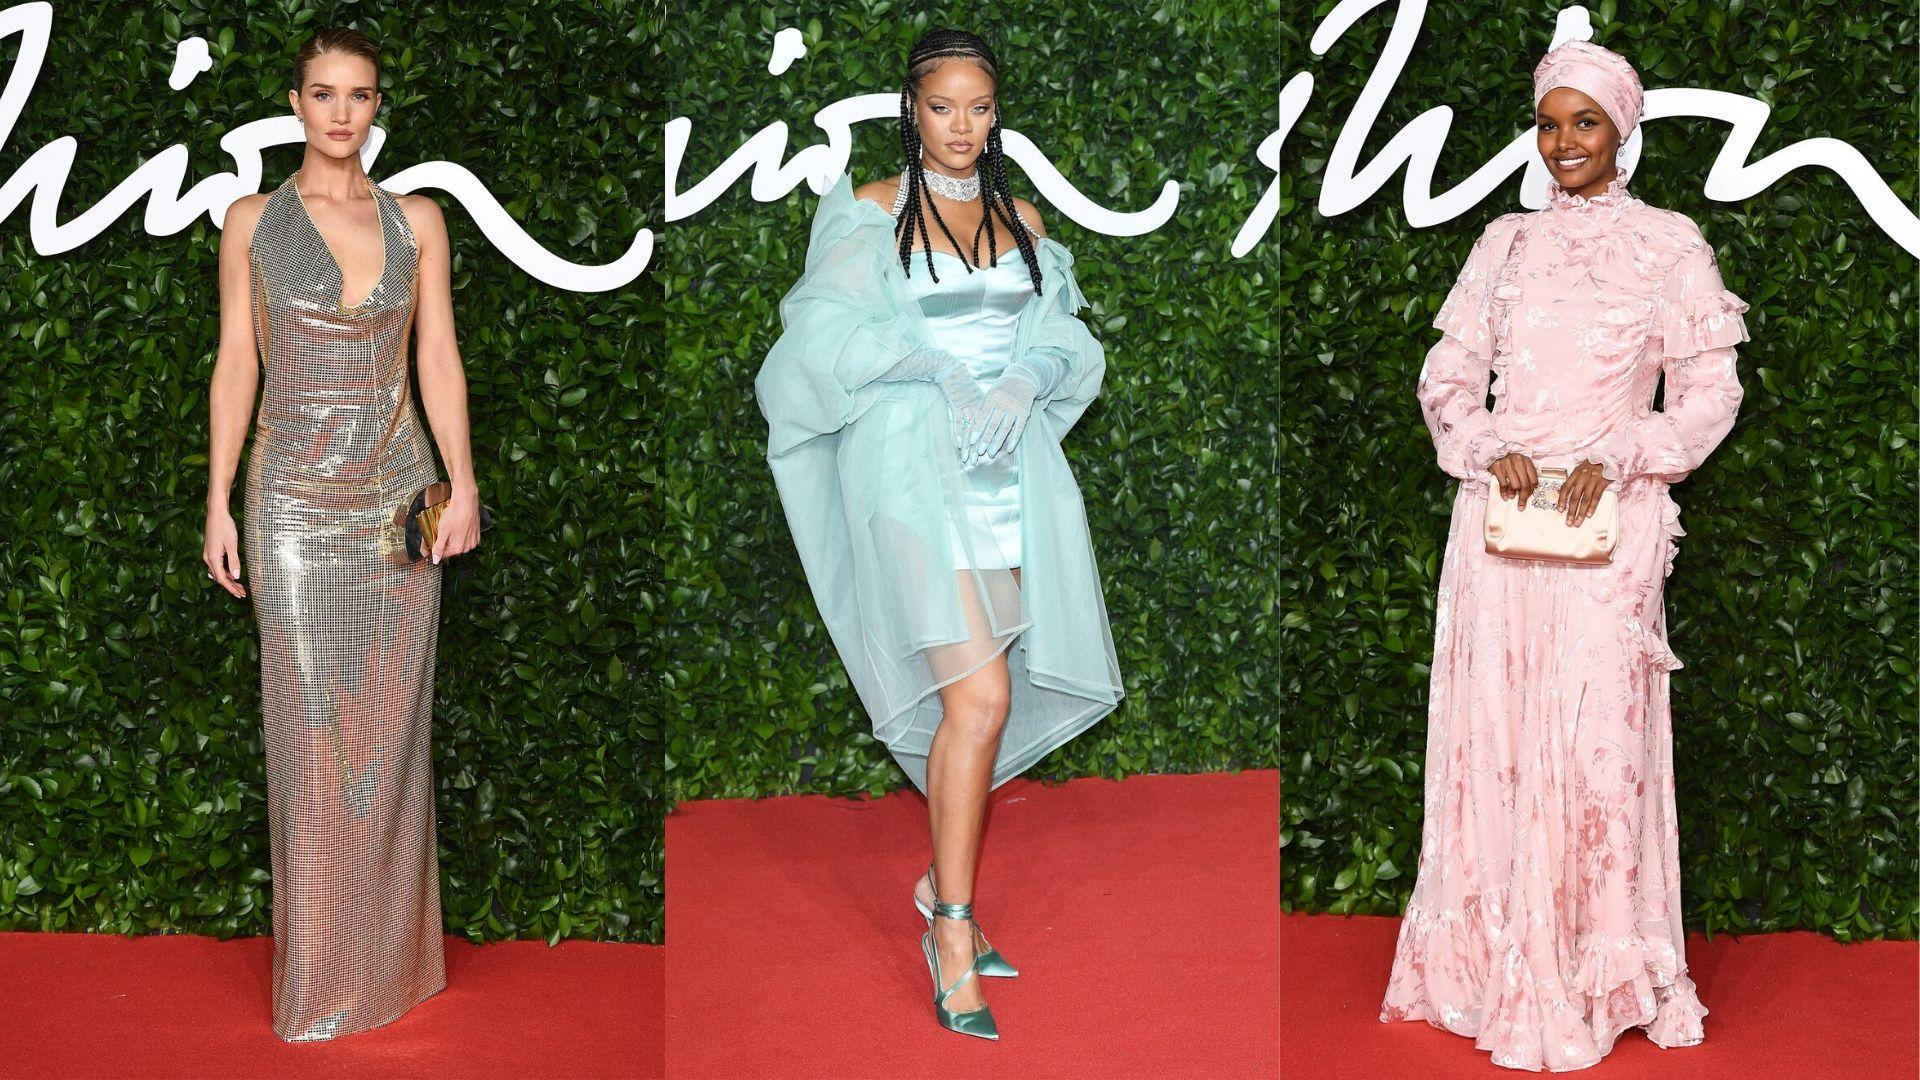 British Fashion Awards 2019: The Best Dressed Celebs